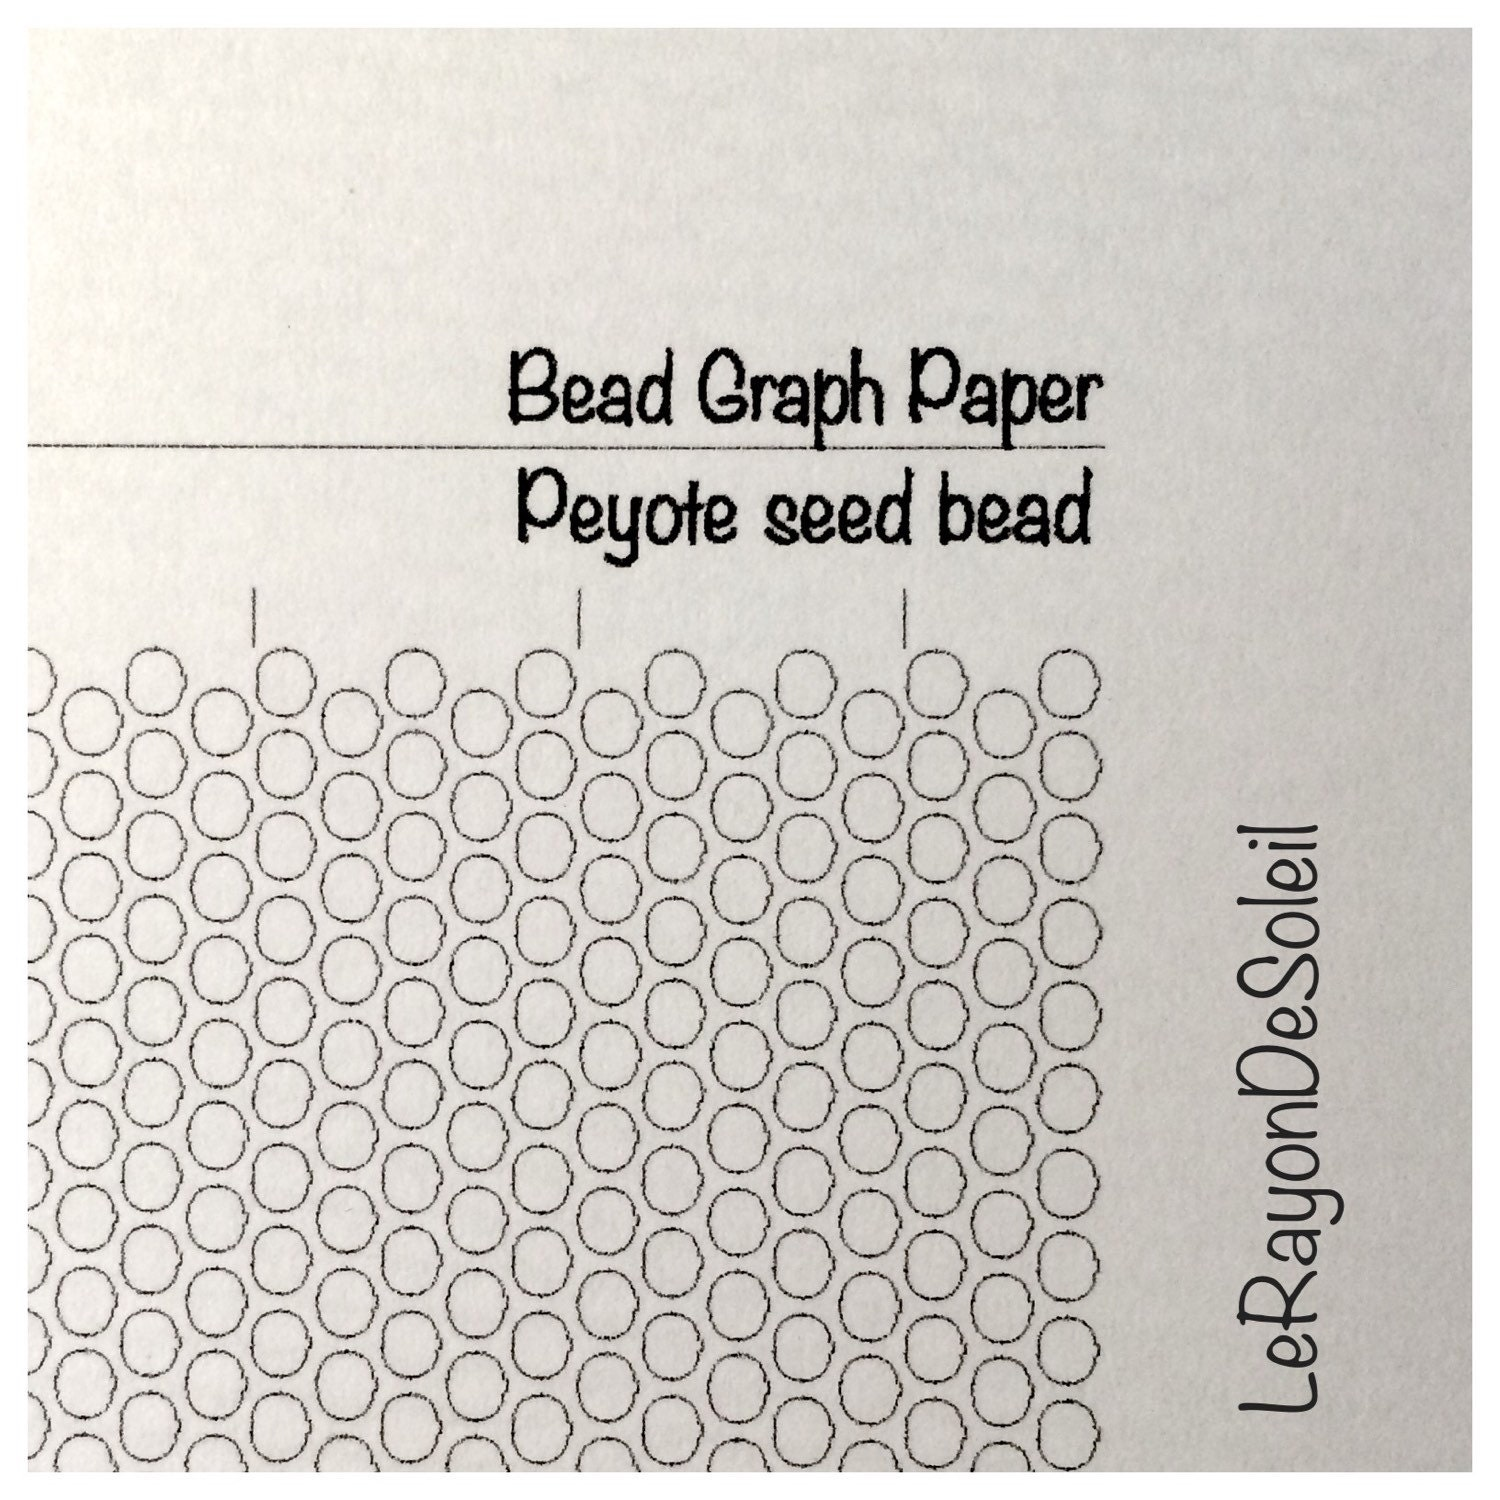 Peyote seed bead graph paper. Peyote template for seed beads.